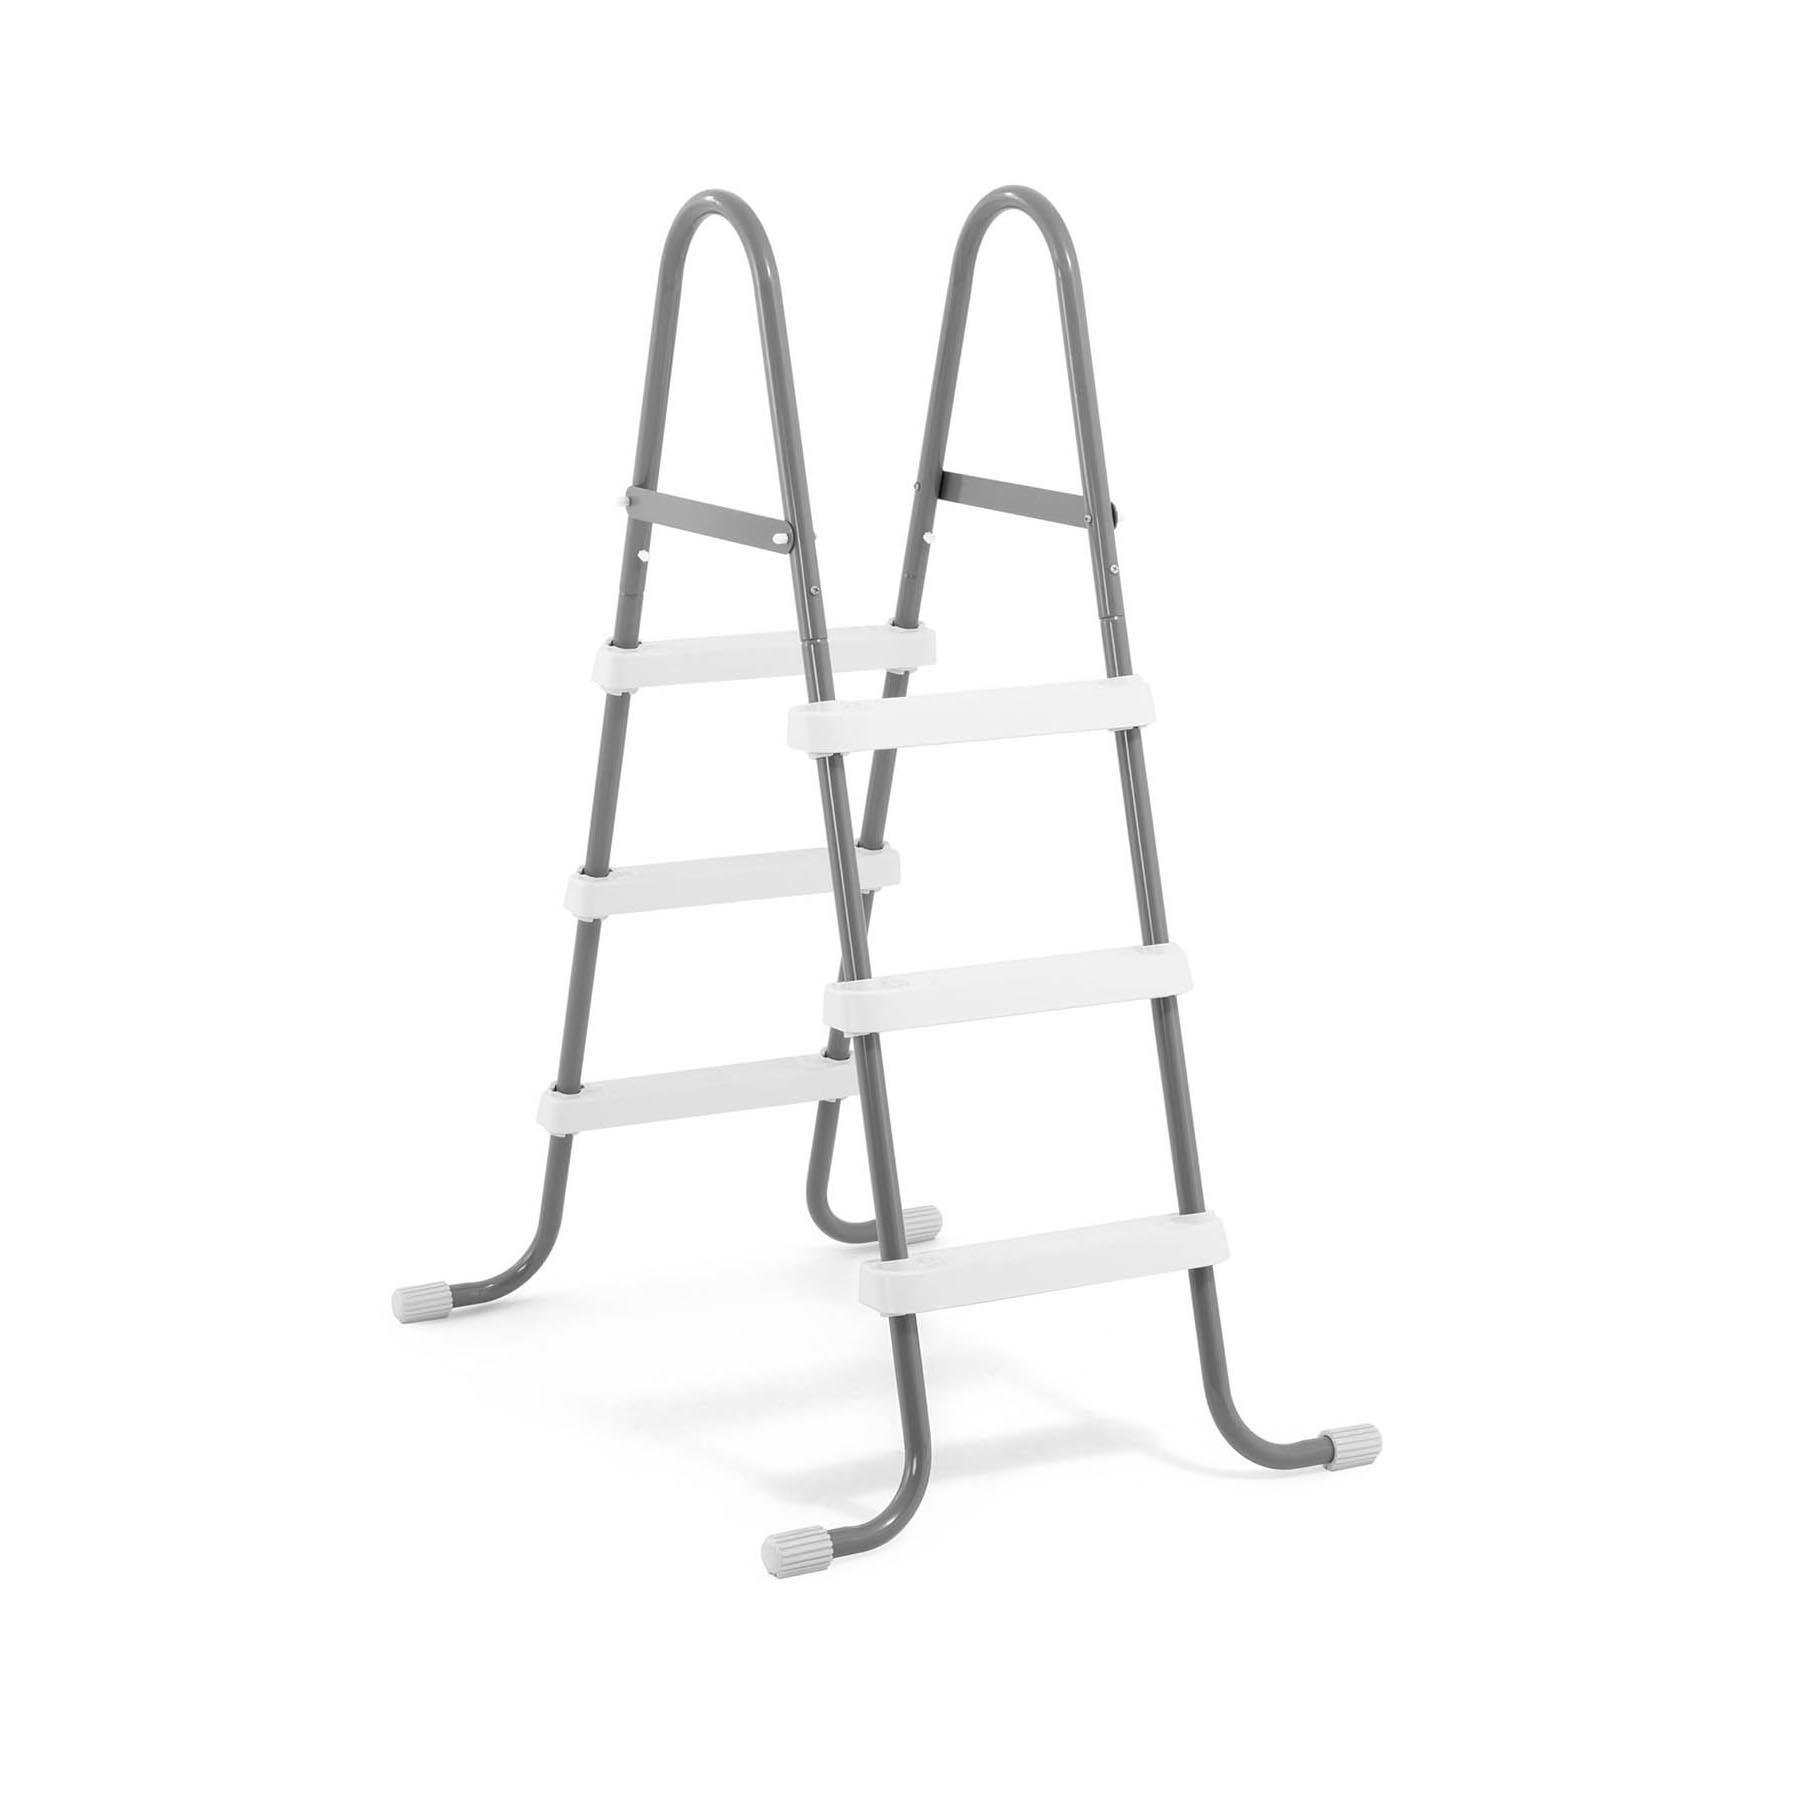 Buy Intex Steel Frame Above Ground Swimming Pool Ladder for 36&quot ...